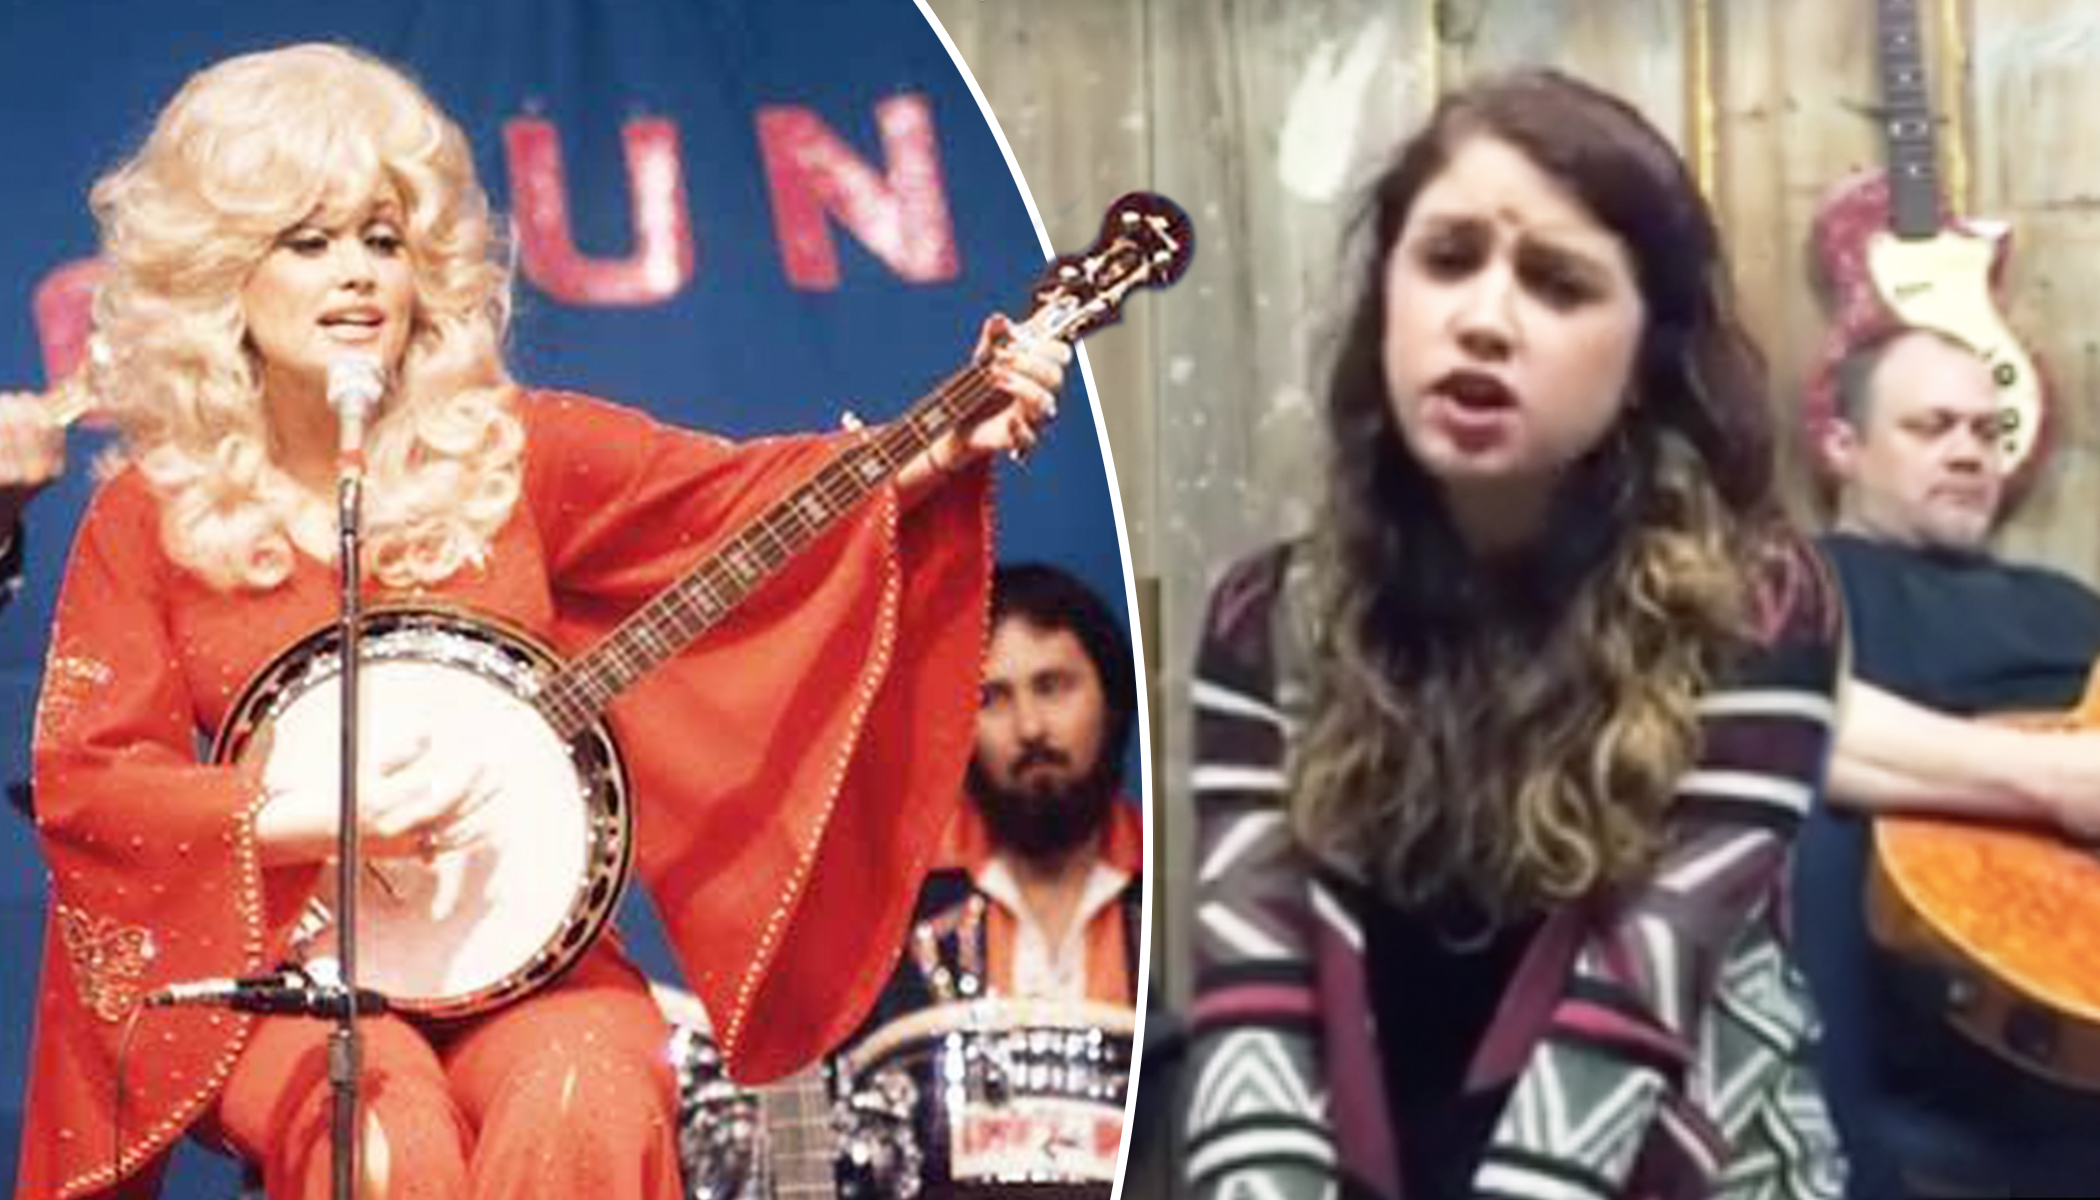 Young Woman's Voice Blows Internet Away With Soulful Cover of Dolly Parton's 'Jolene'